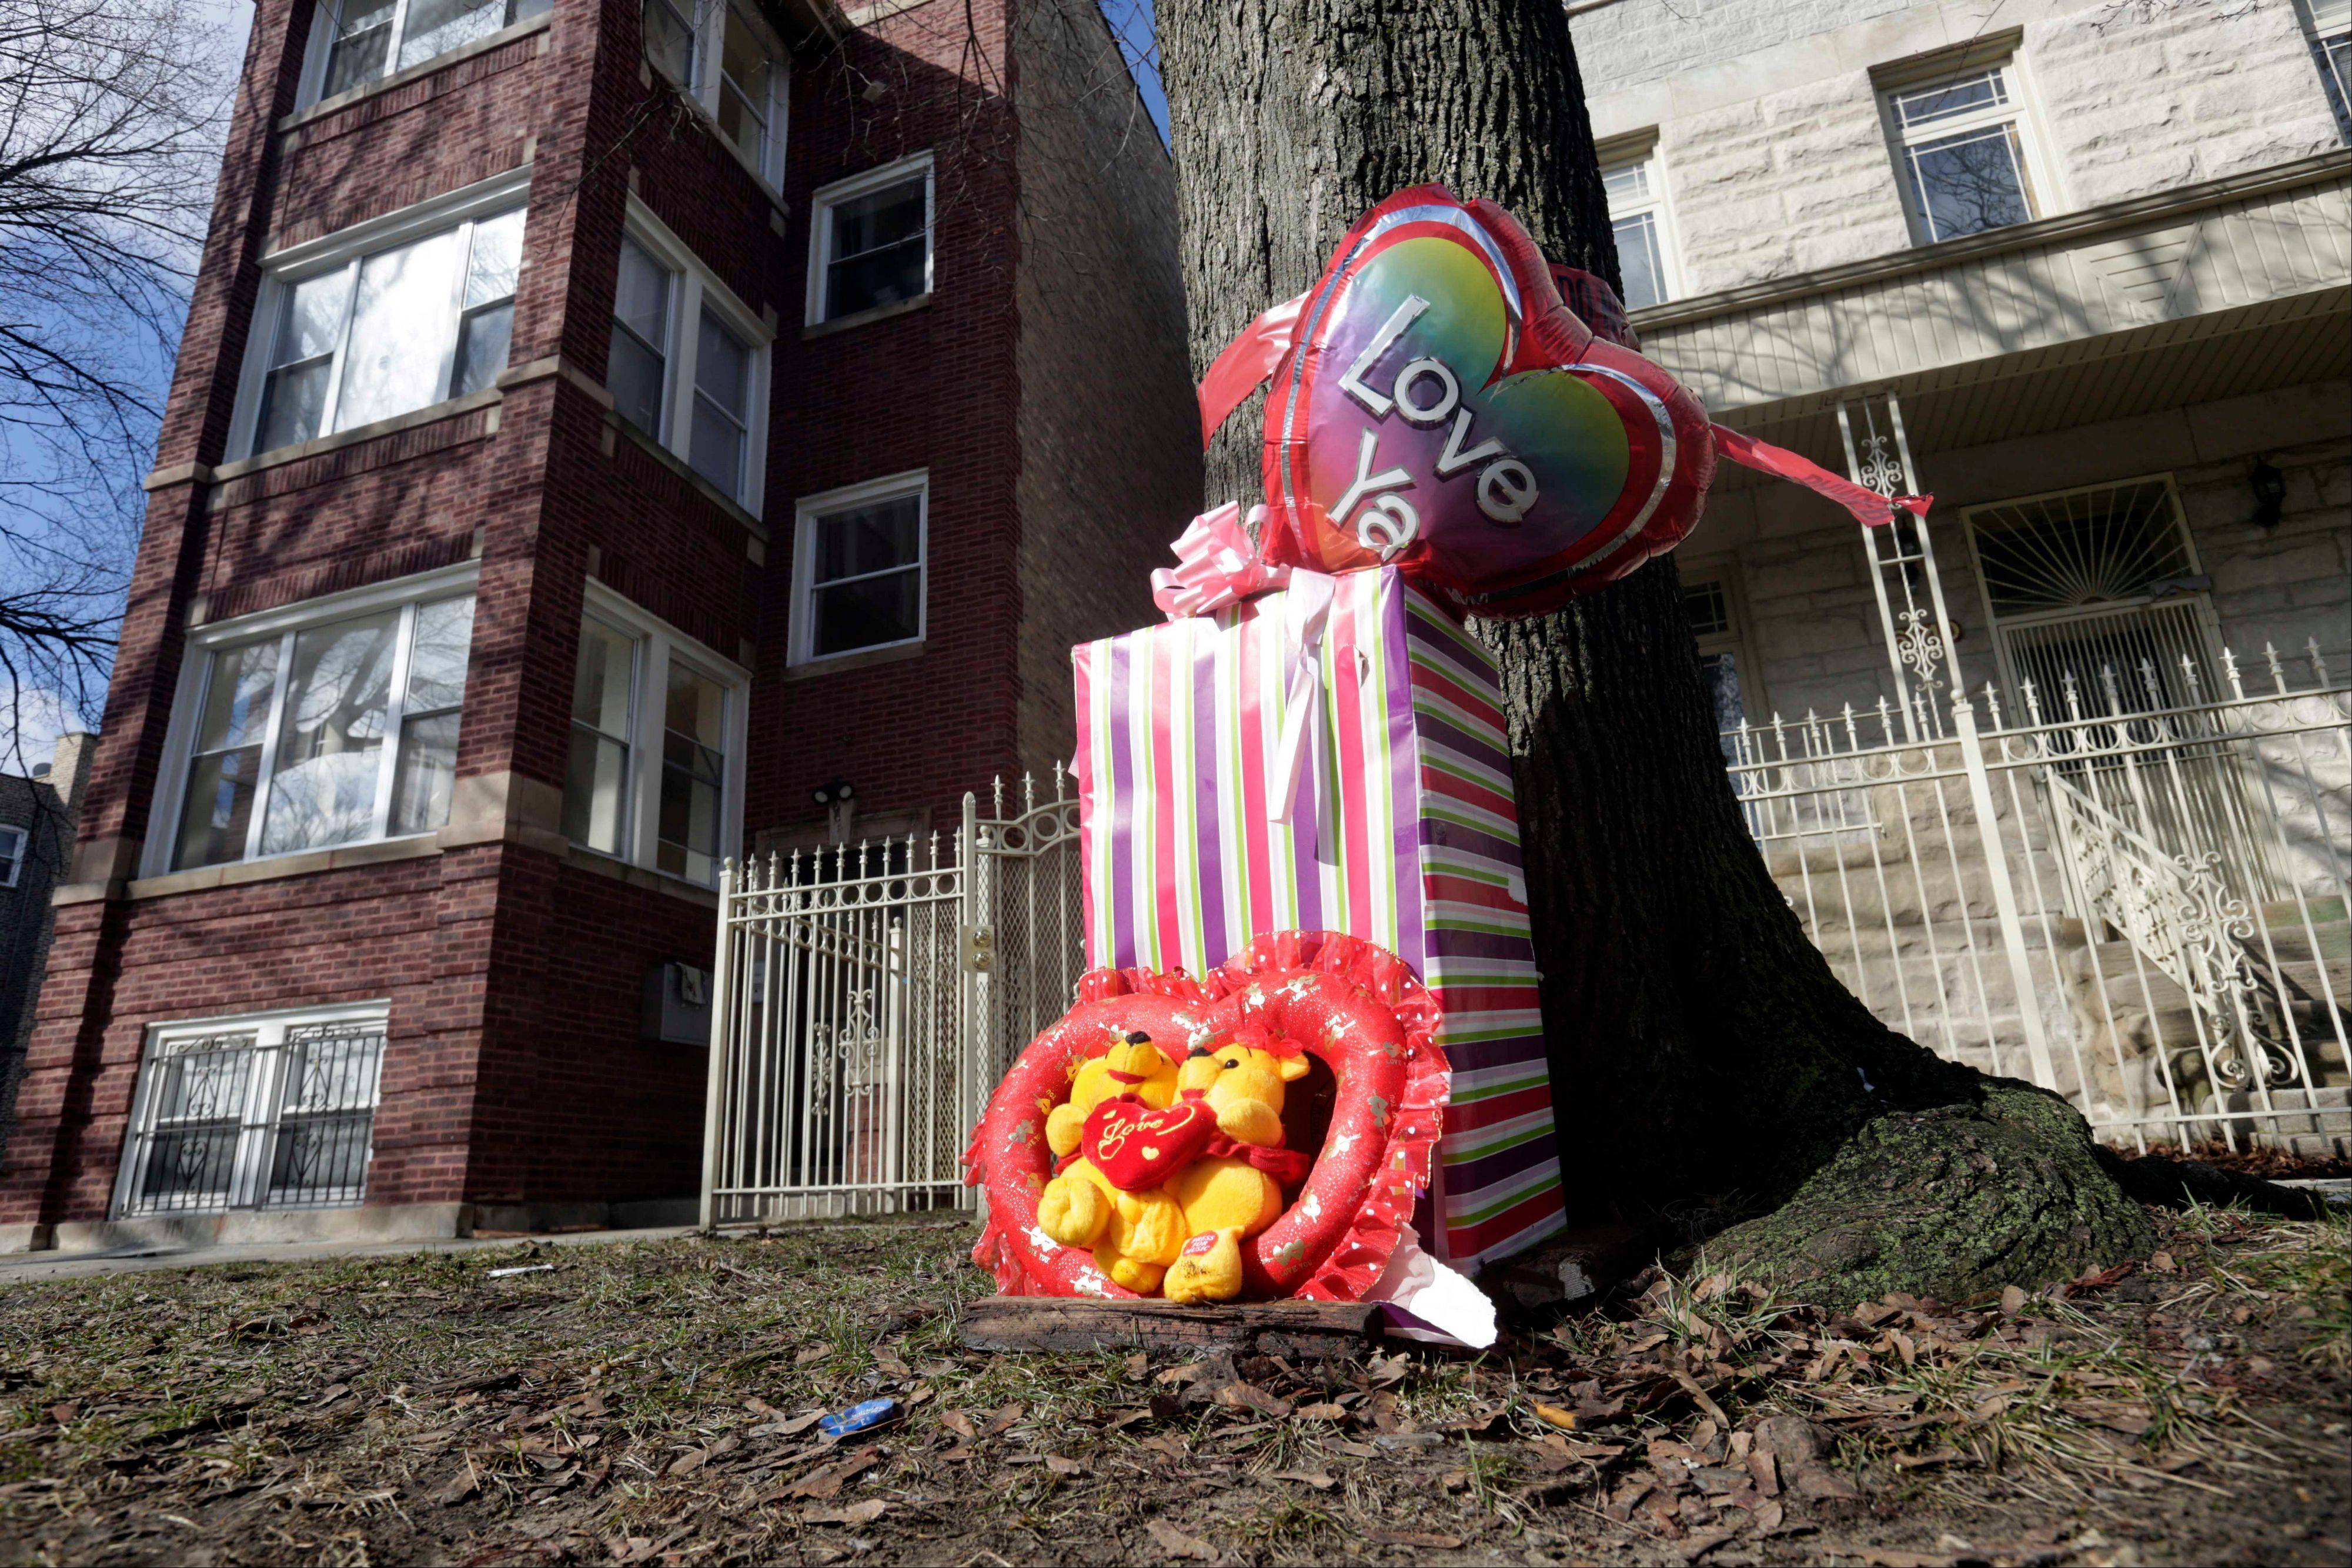 A makeshift memorial has been placed at the site where 6-month-old girl Jonylah Watkins and her father were shot Monday on the South Side. The baby, who was shot five times, died Tuesday morning.